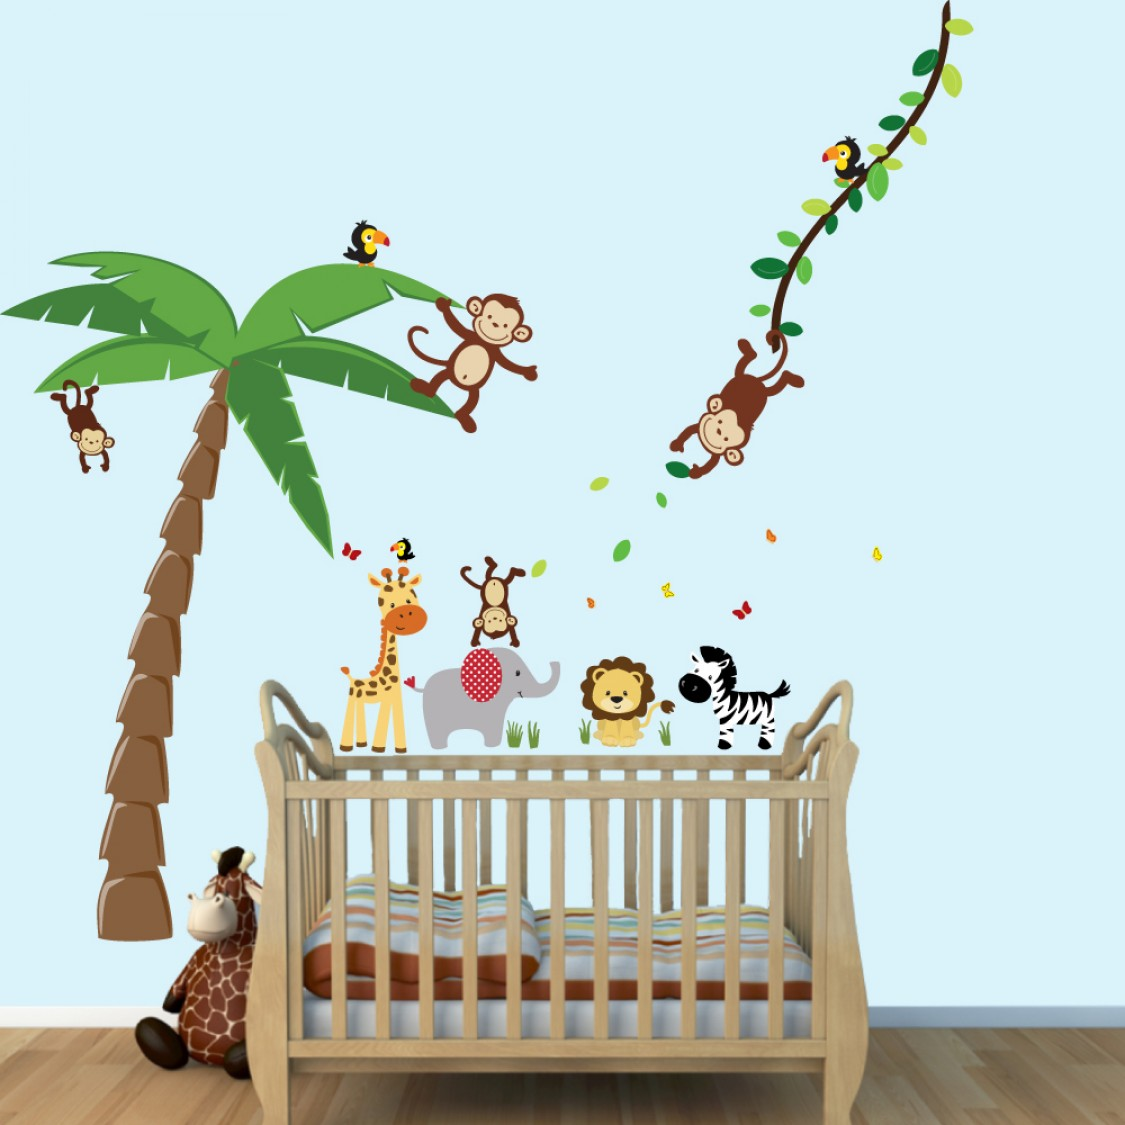 Colorful Large Wall Decor With Palm Tree Stickers For Boys Bedrooms